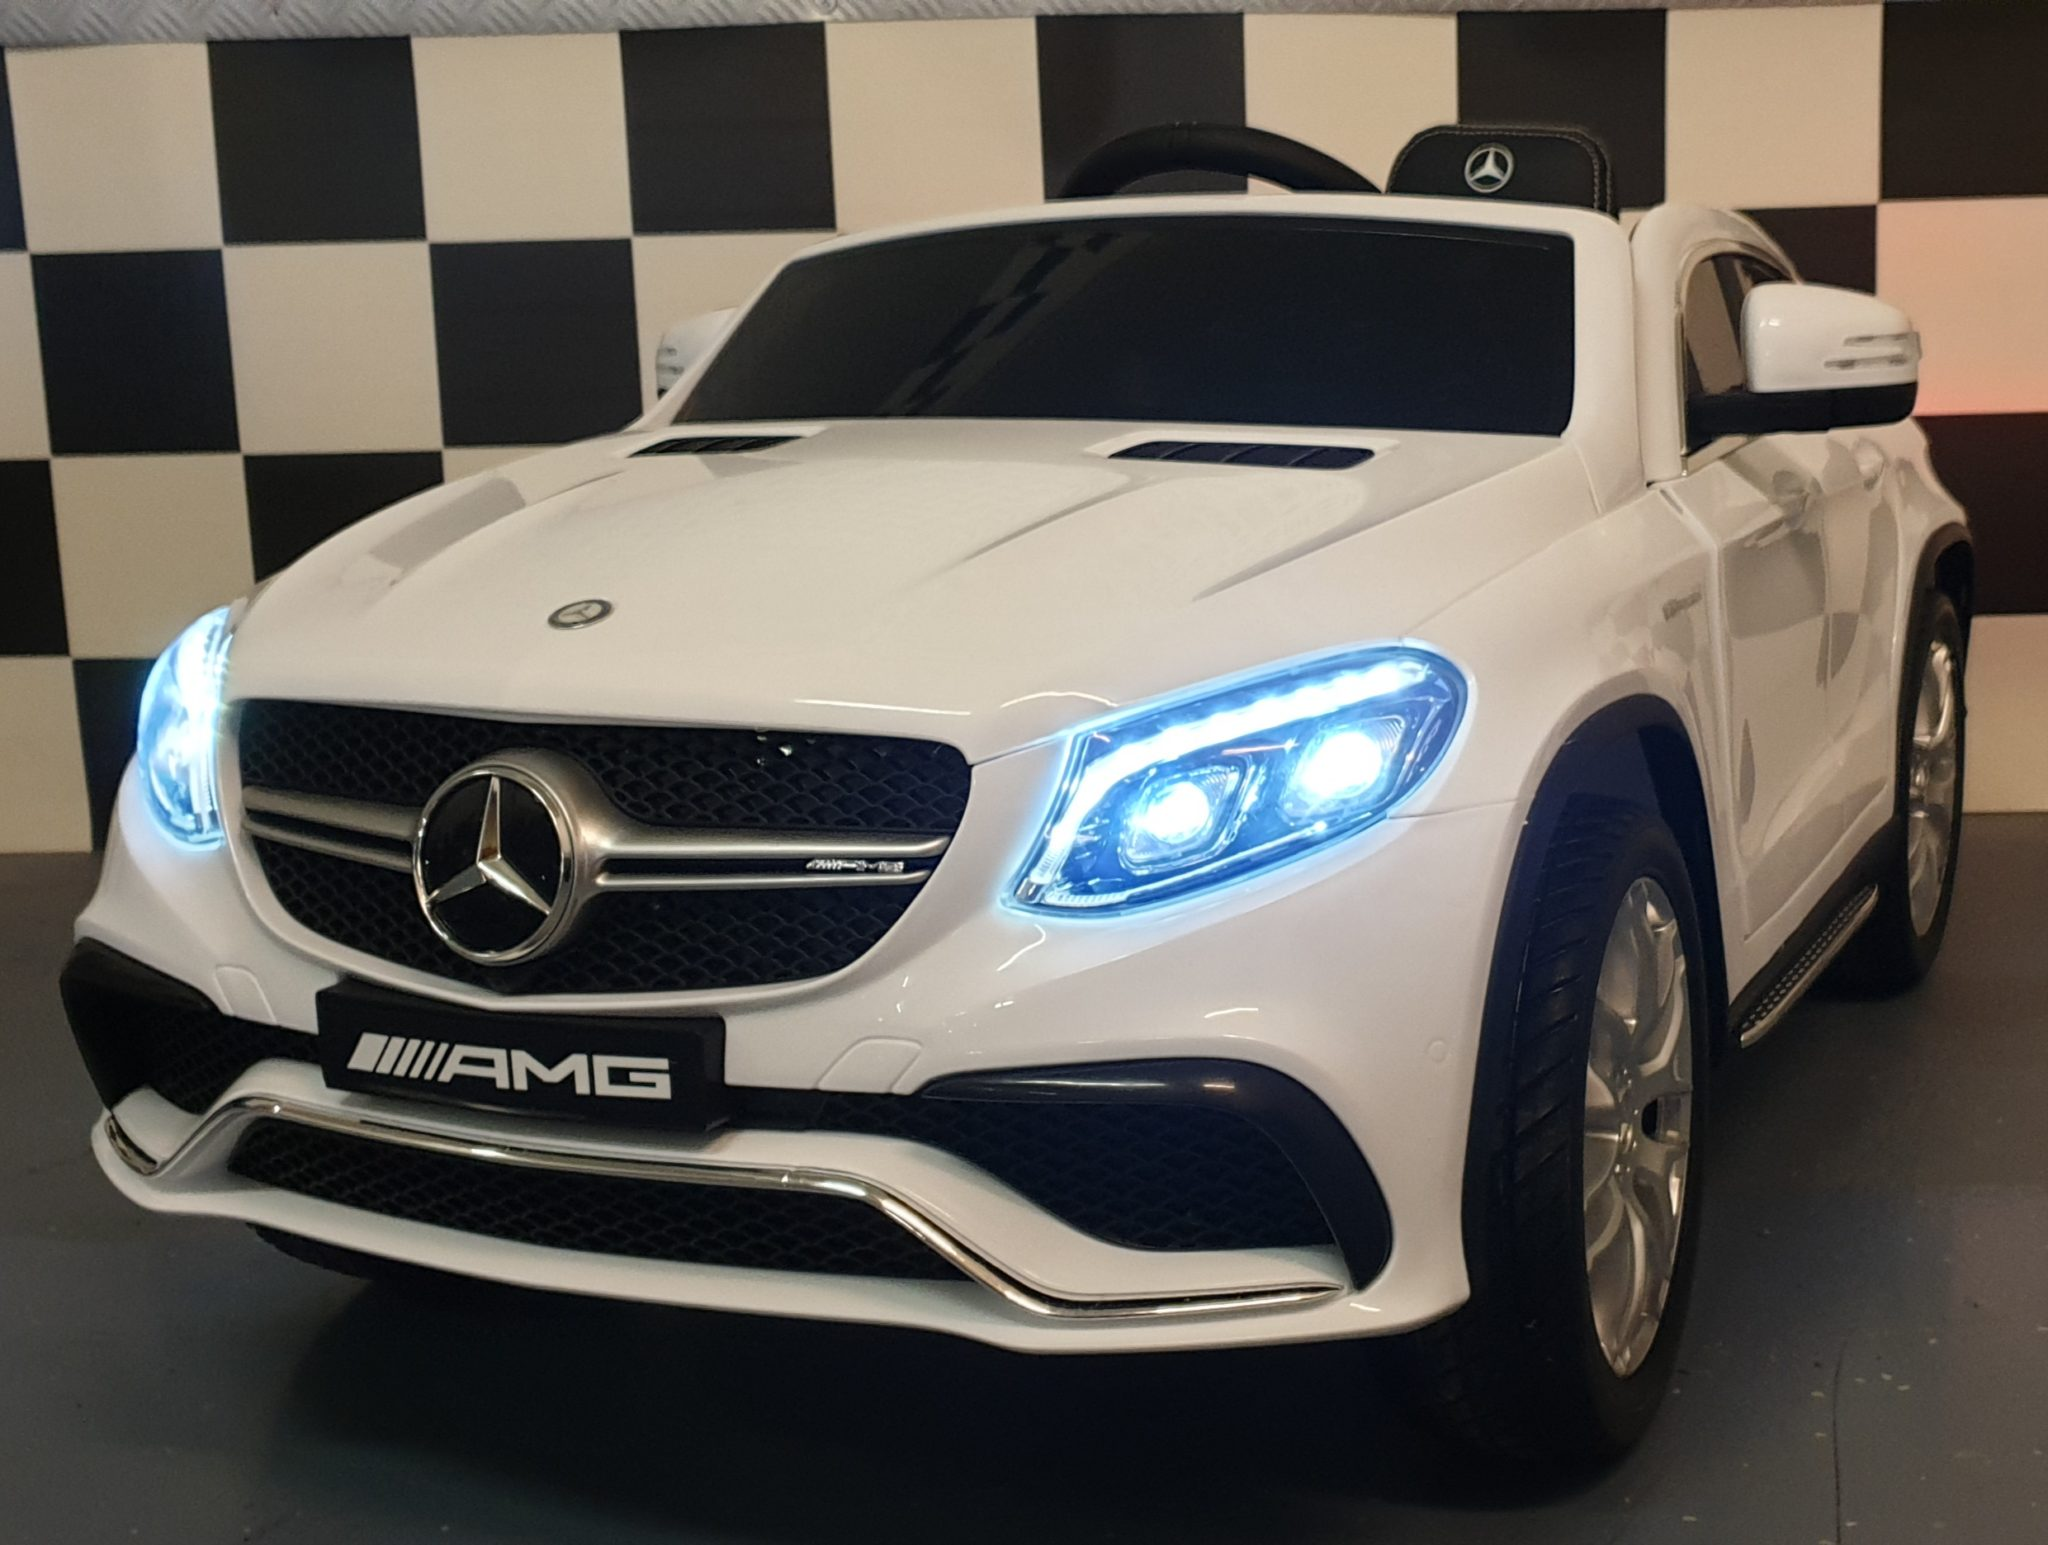 Mercedes AMG GLE accu speelgoedauto 2.4G RC 12V wit